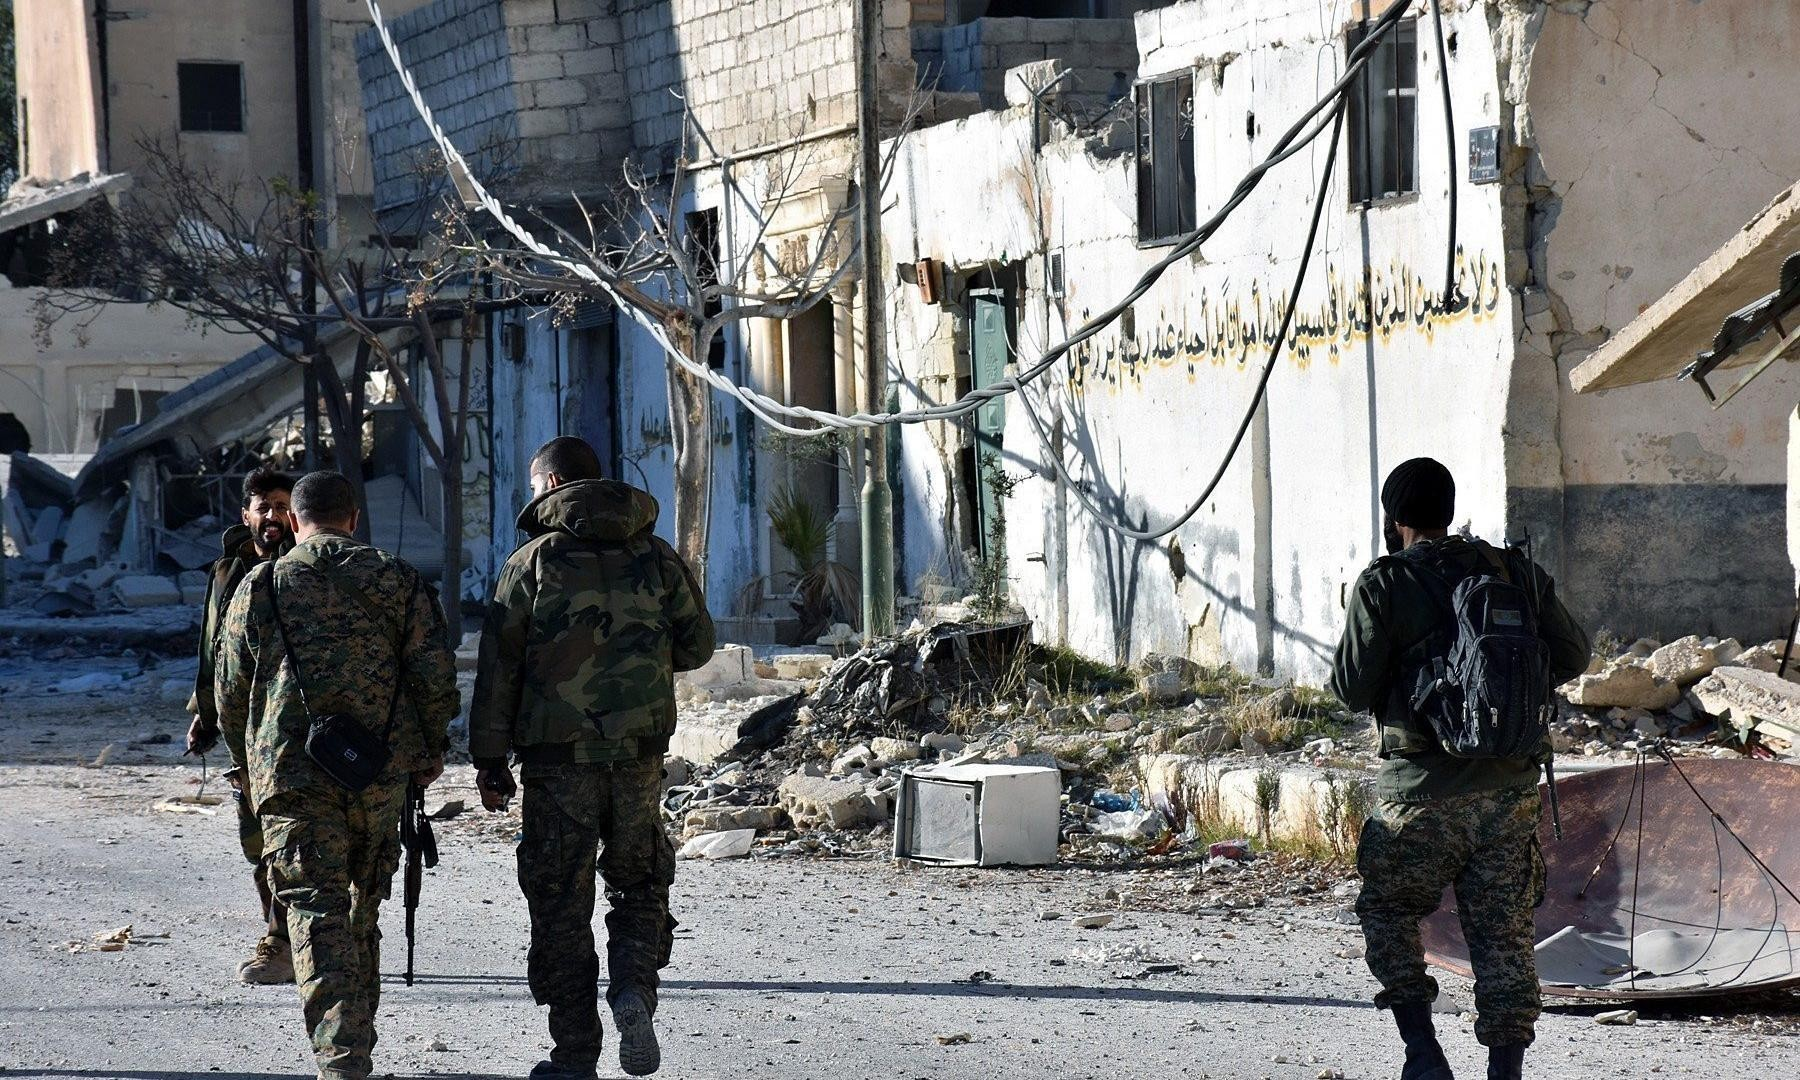 Syrian rebel forces in Aleppo suffer 'biggest defeat since 2012'